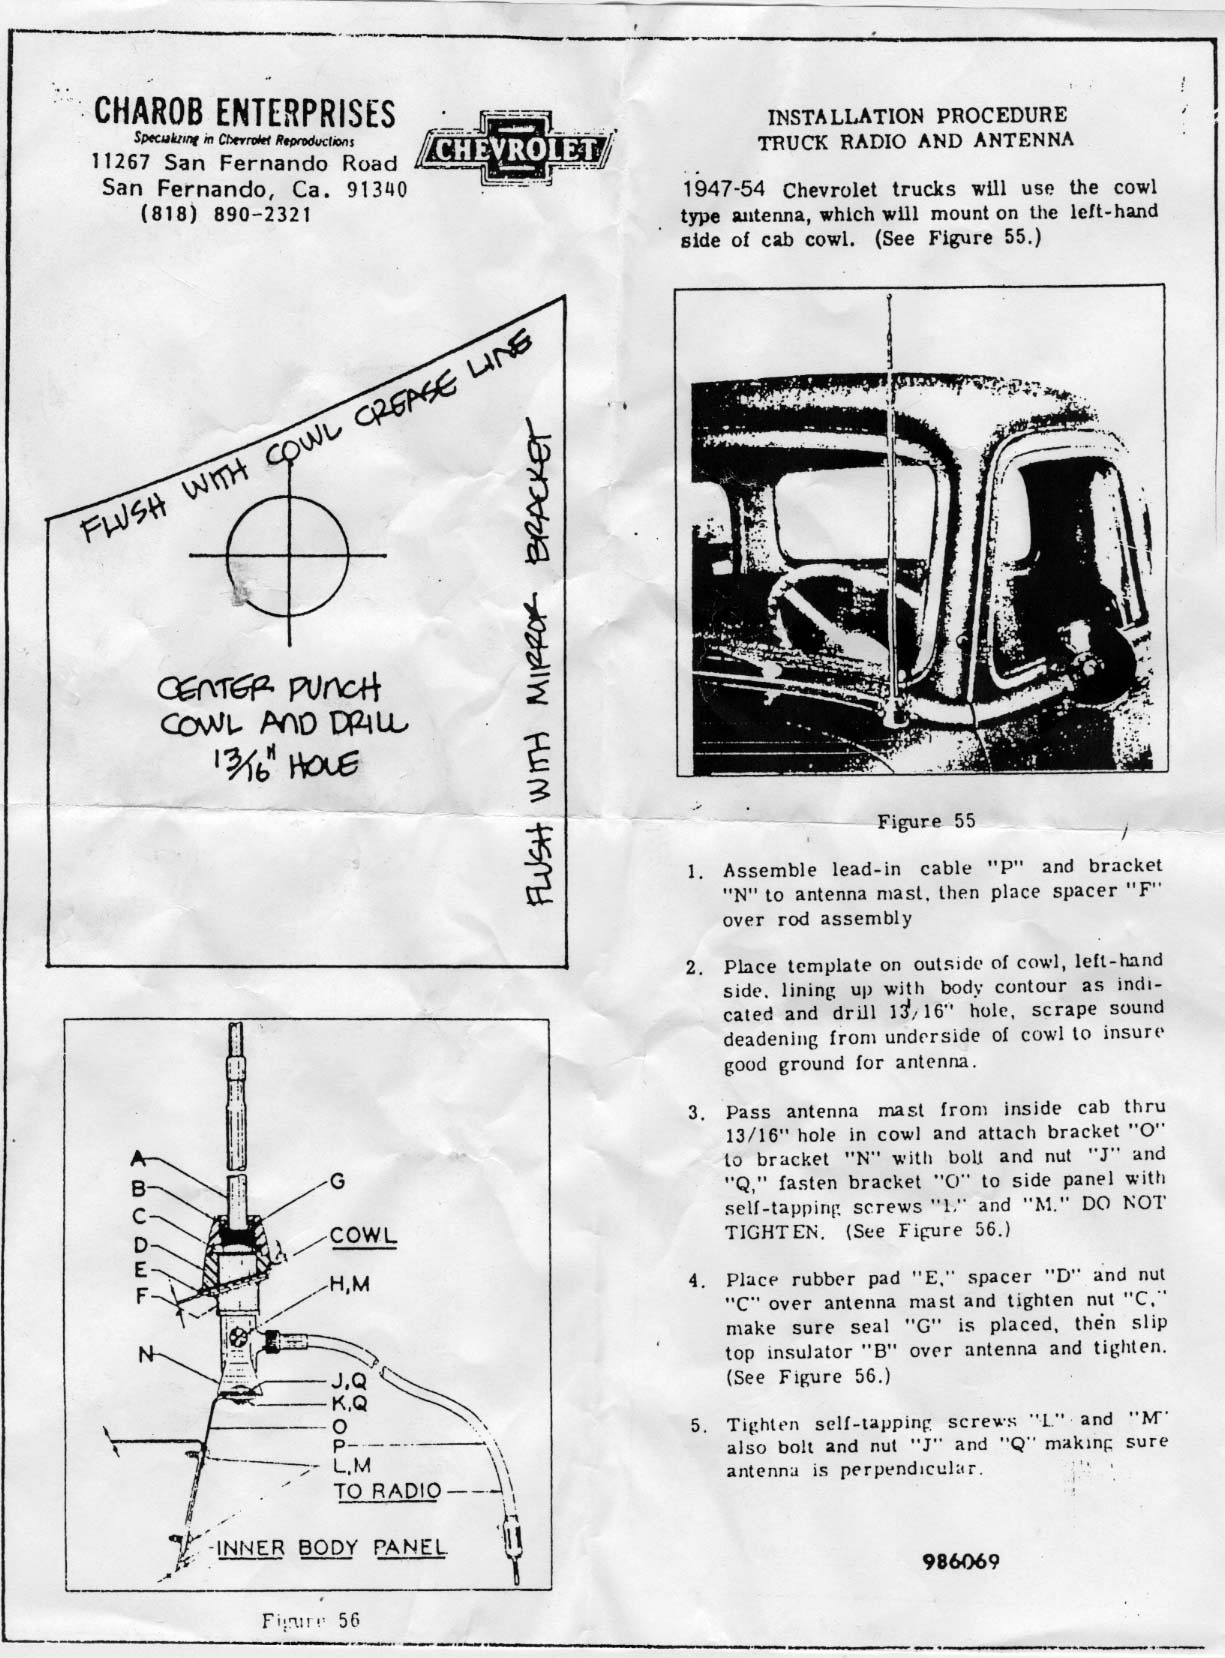 Chevy Truck Tail Light Wiring Diagram On 1950 Chevy Truck Wiring